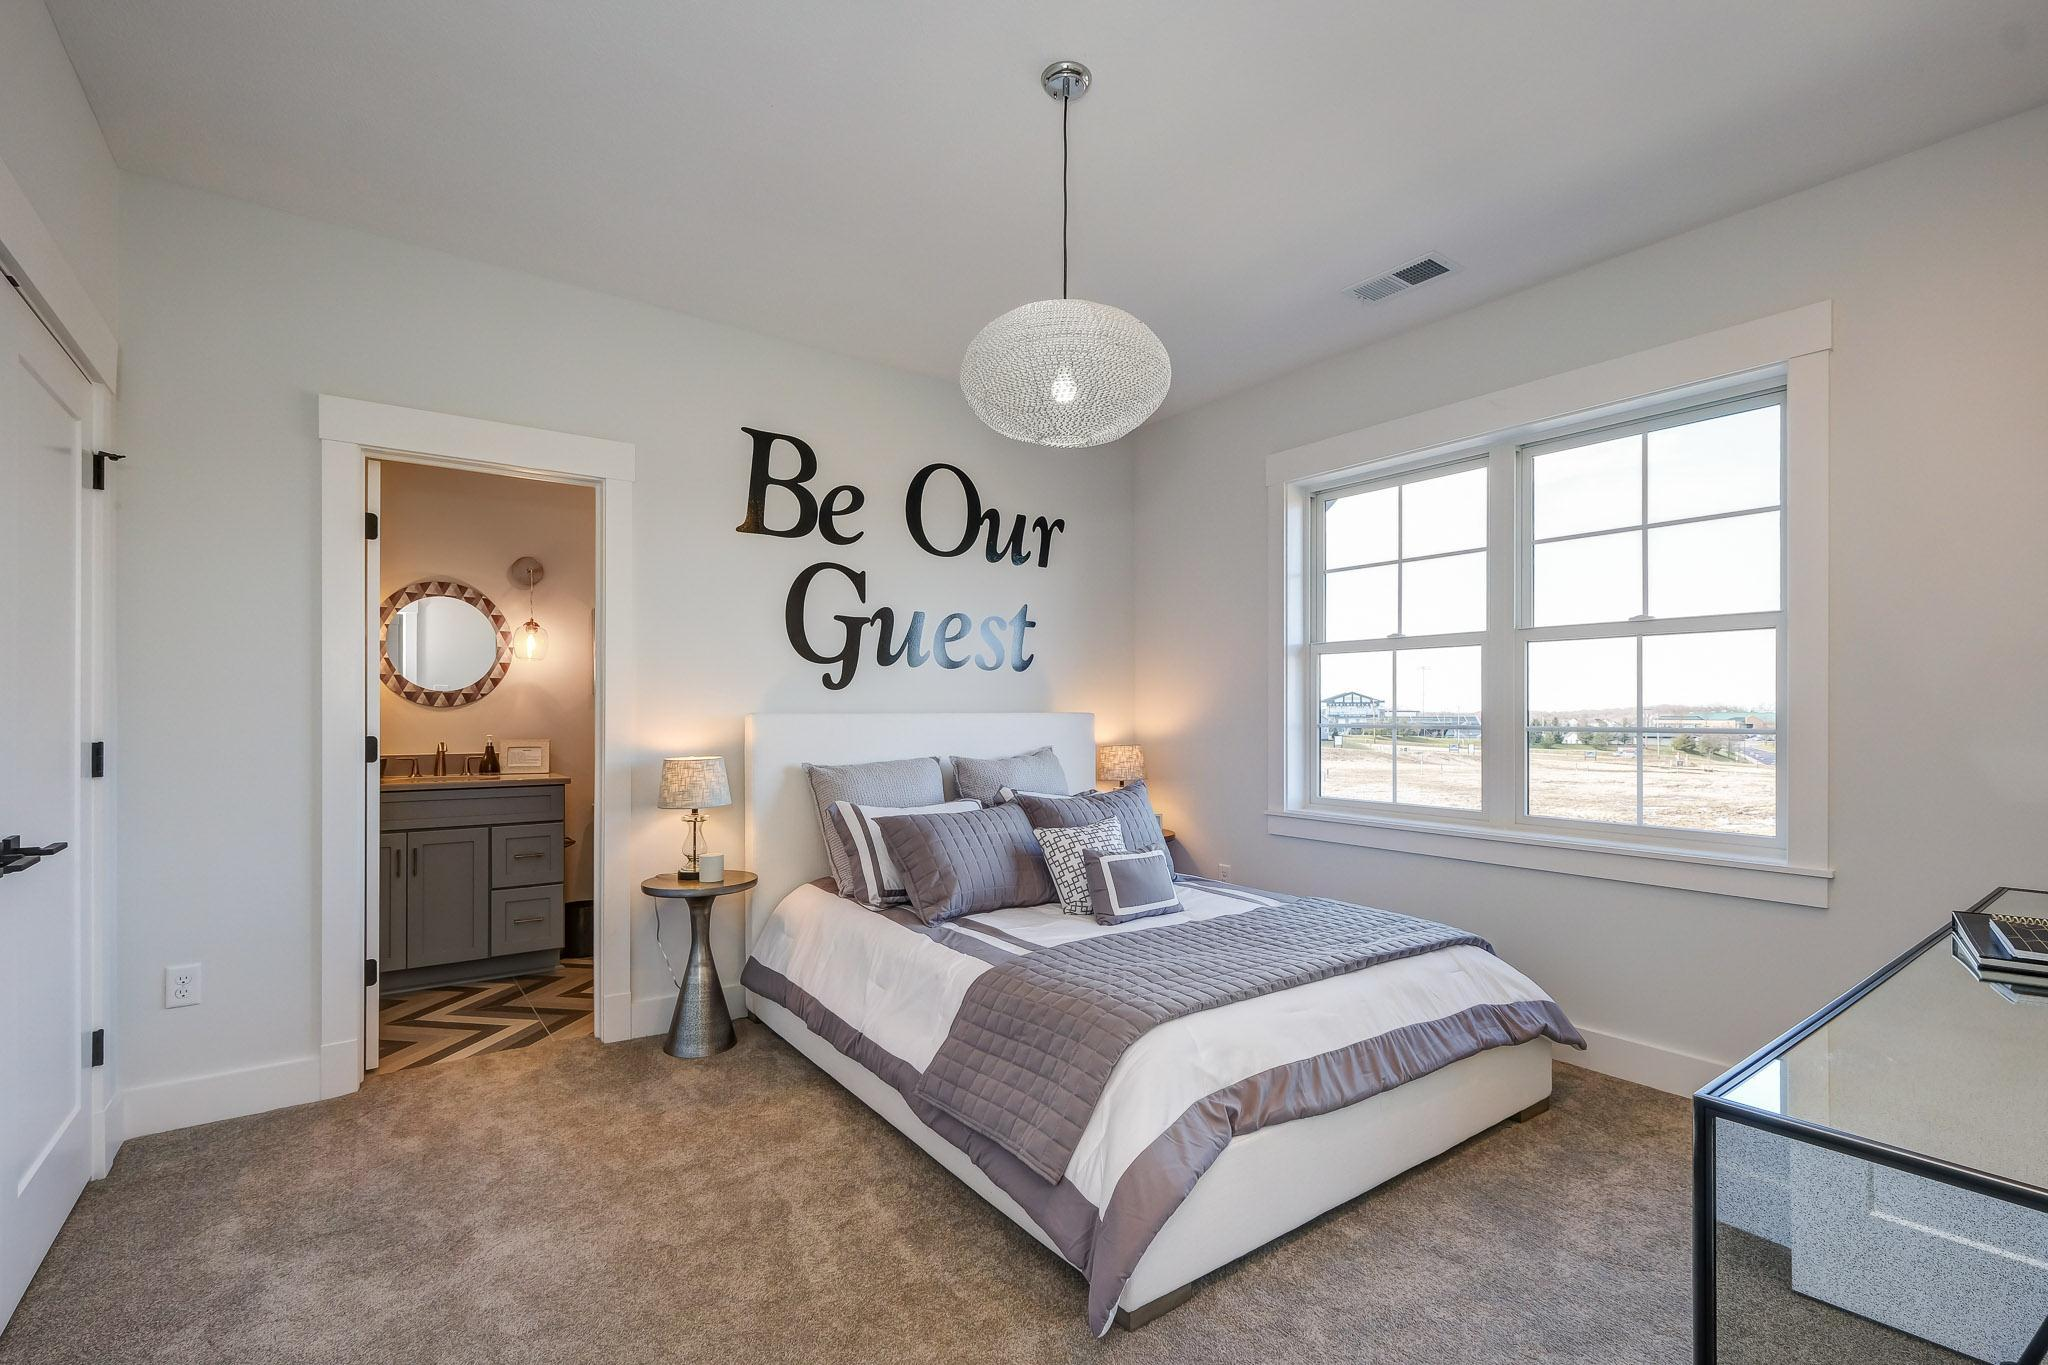 Bedroom featured in the Napa By Infinity Custom Homes in Pittsburgh, PA